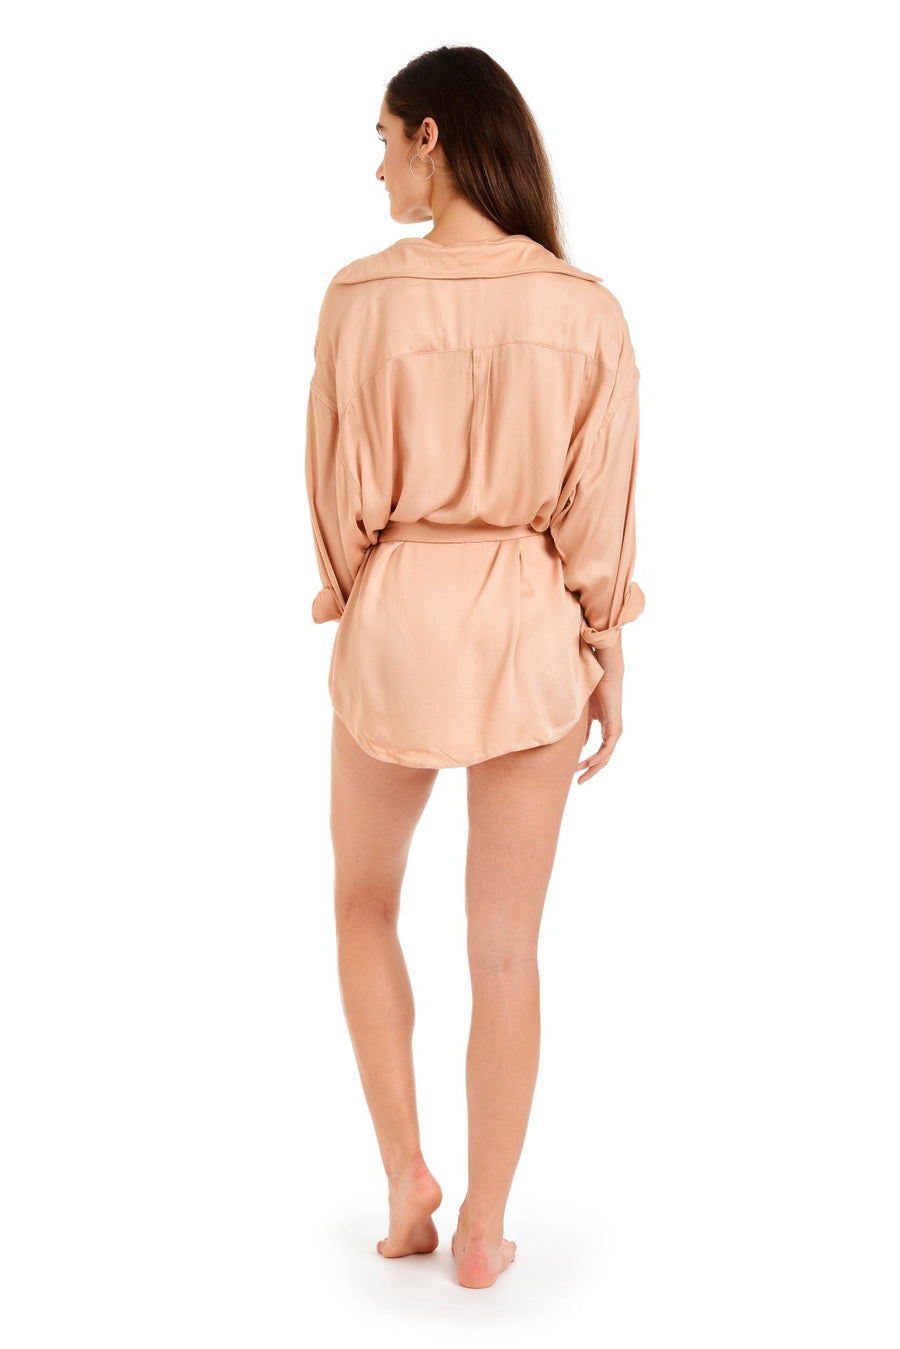 Back view of the linda dress swimwear cover up